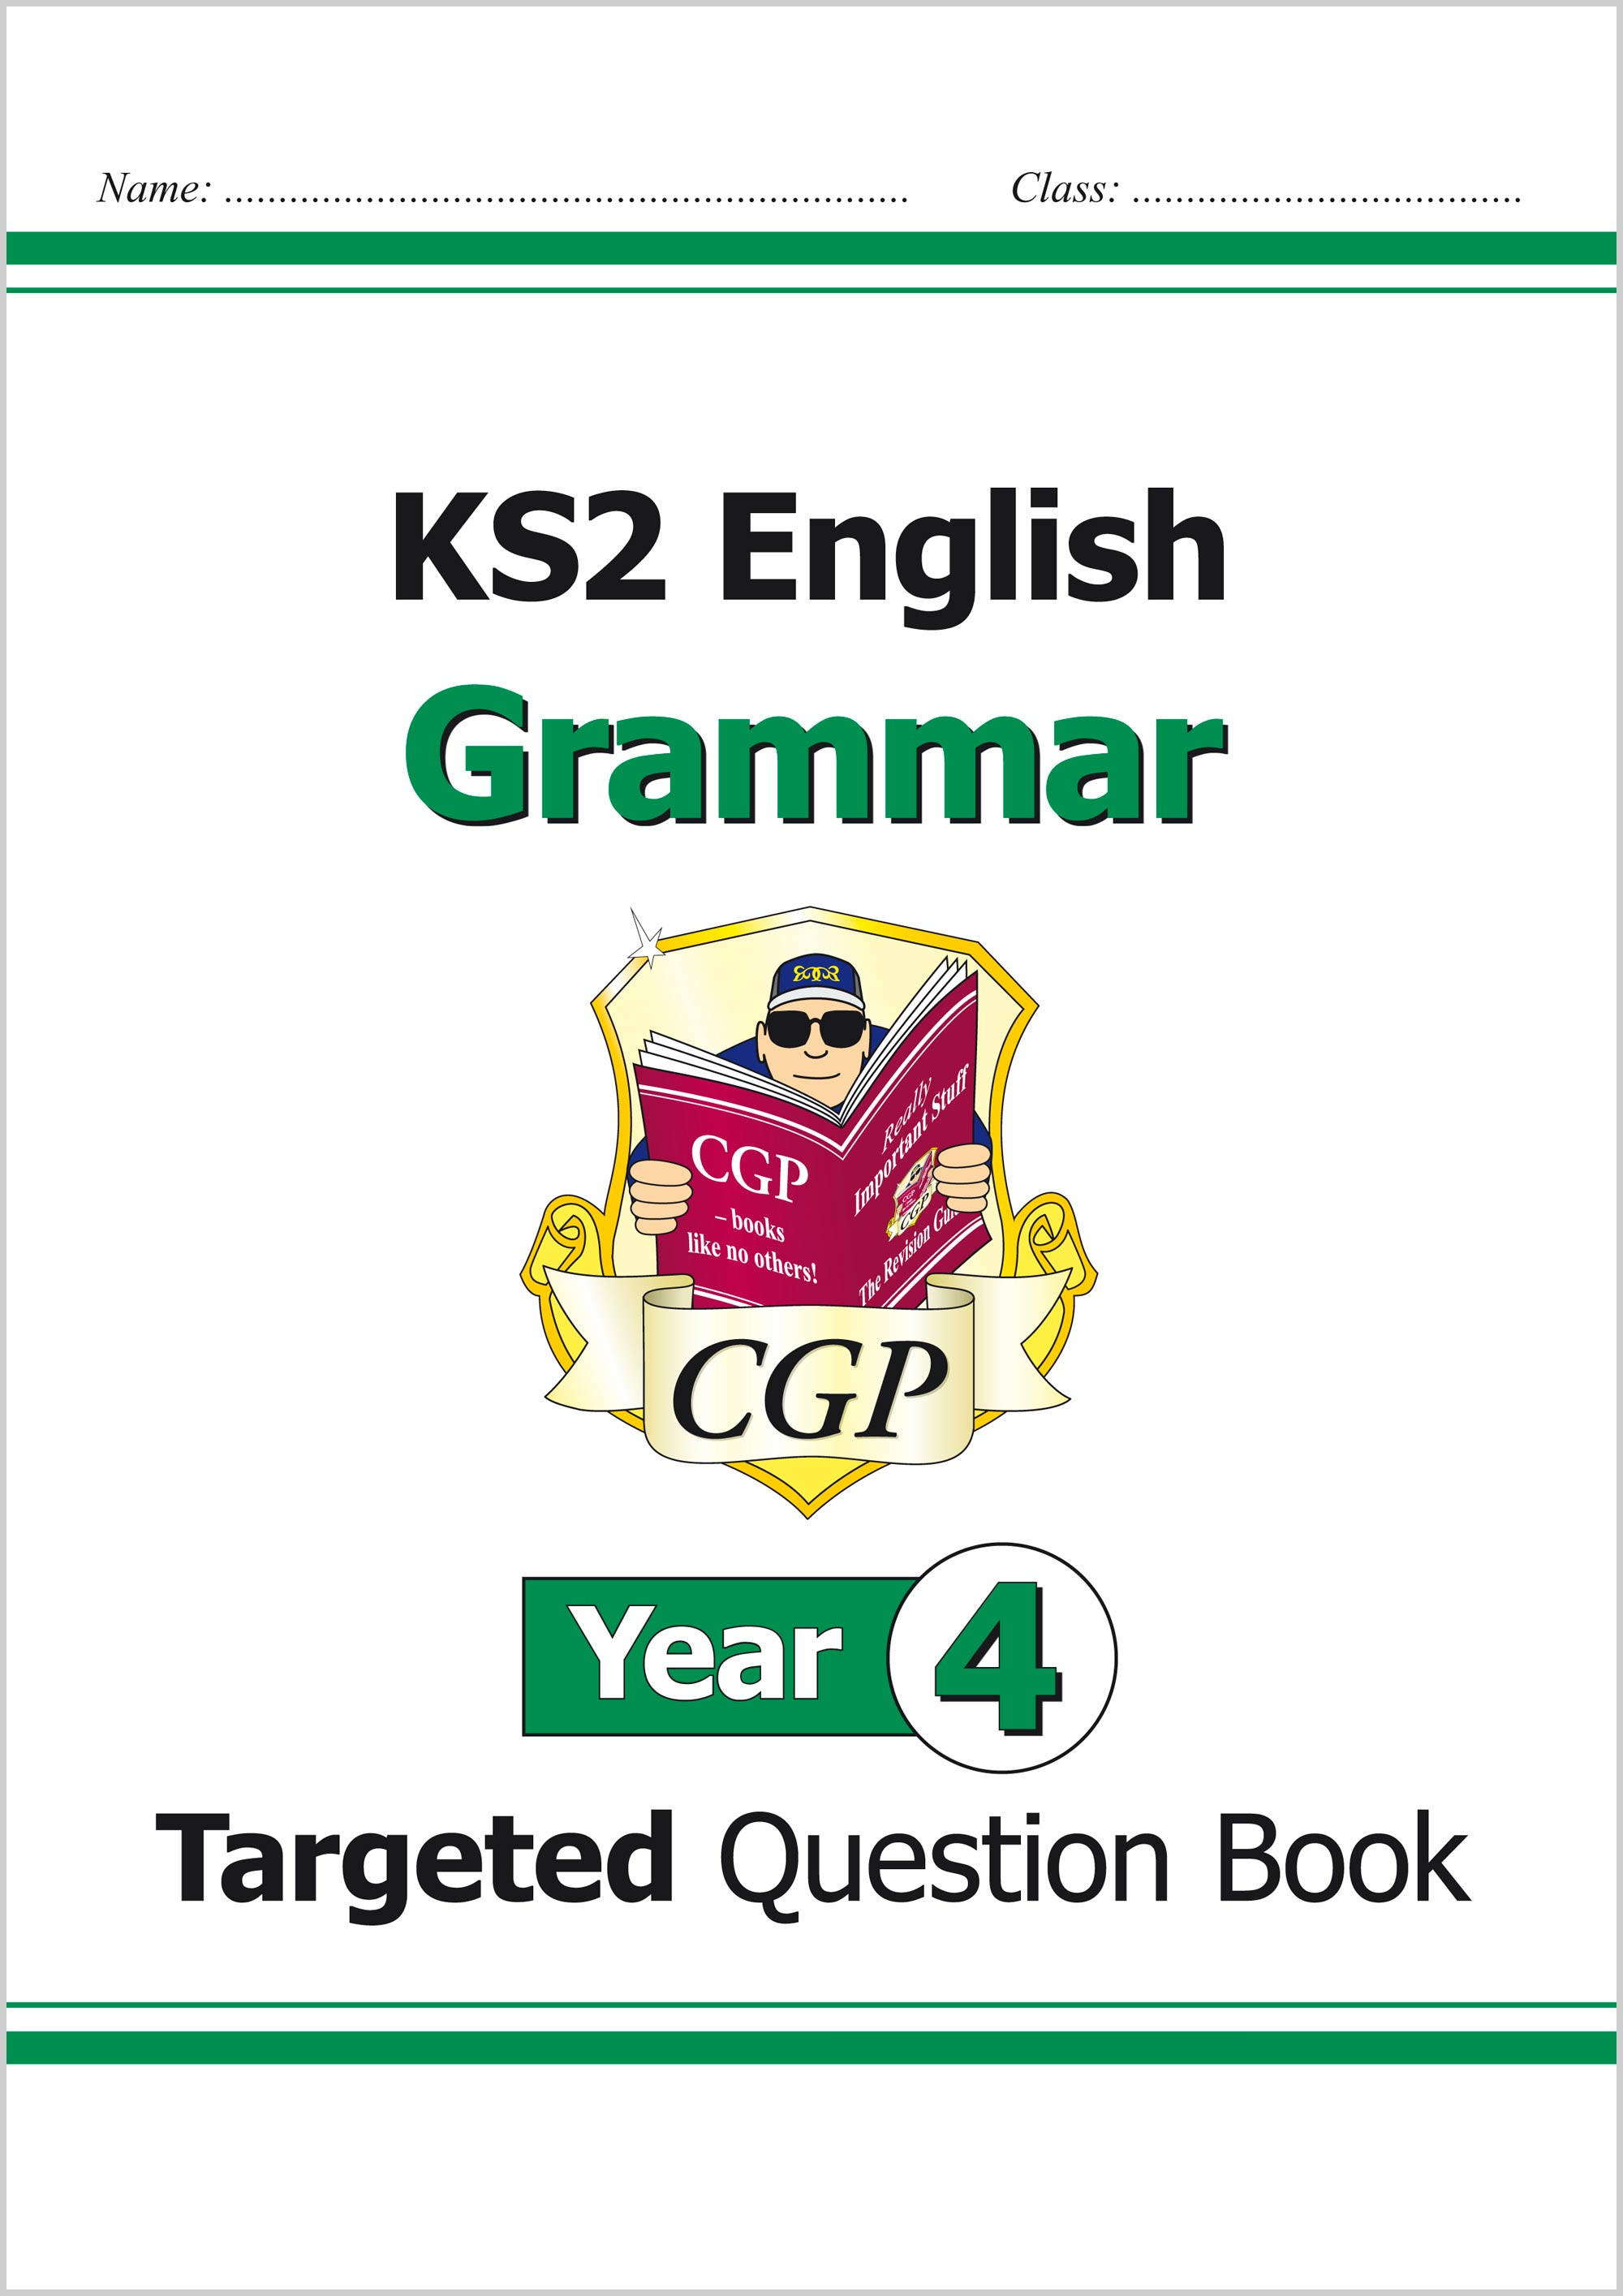 E4GW21 - KS2 English Targeted Question Book: Grammar - Year 4